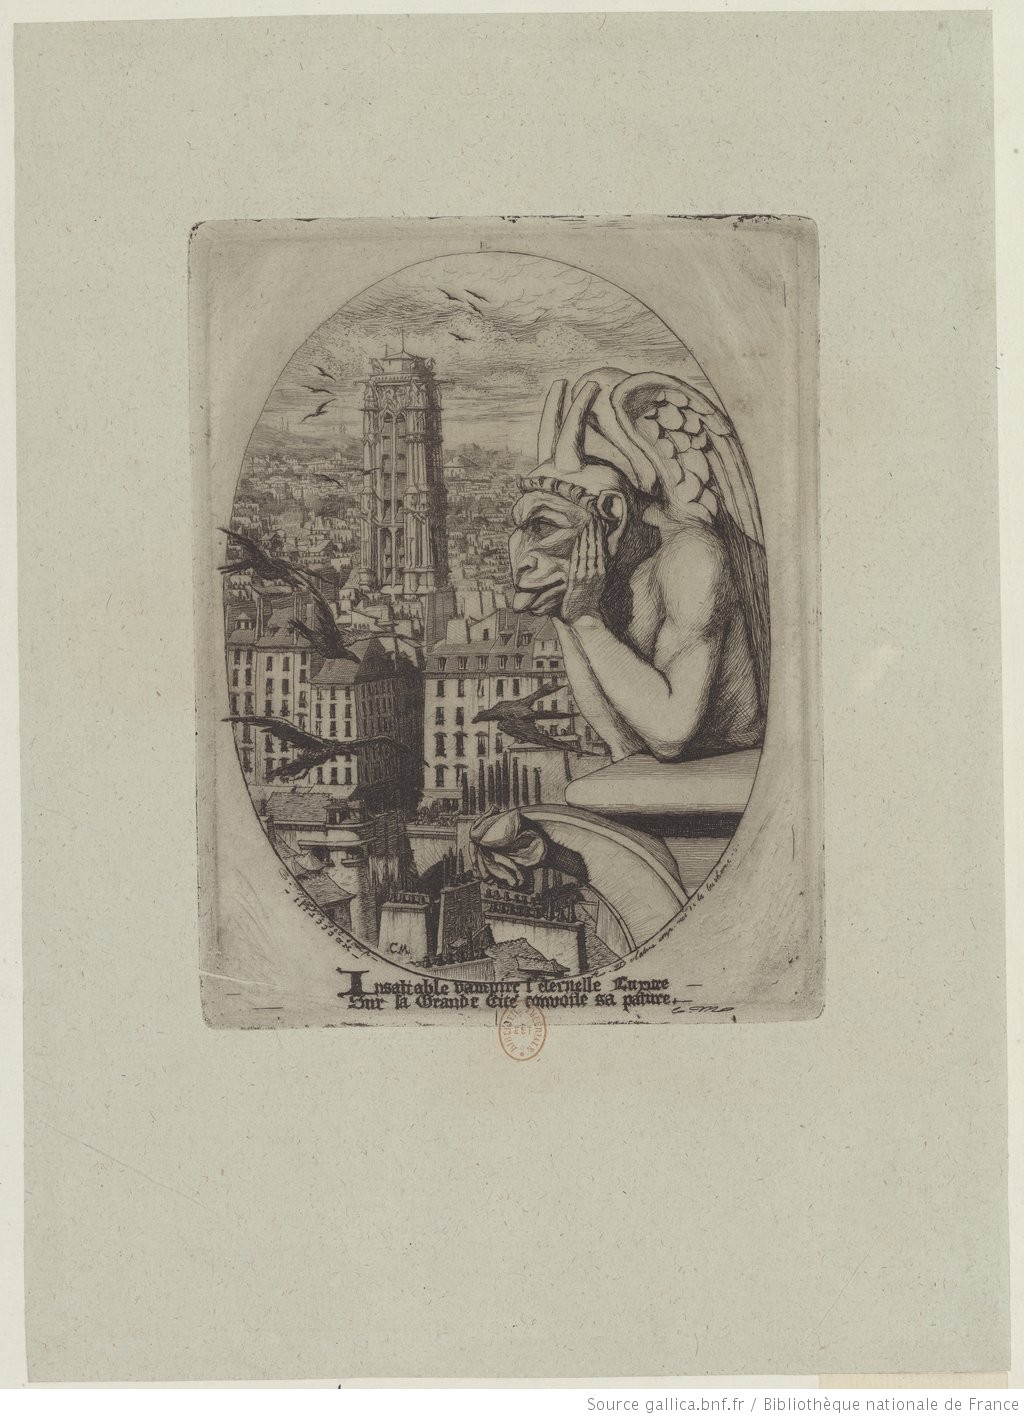 Charles Meryon (1821-1868), Le malingre cryptogame, 1860, etching, Rex Nan Kivell Collection; NK731/1  (A plate from: Le voyage a la Nouvelle Zelande)